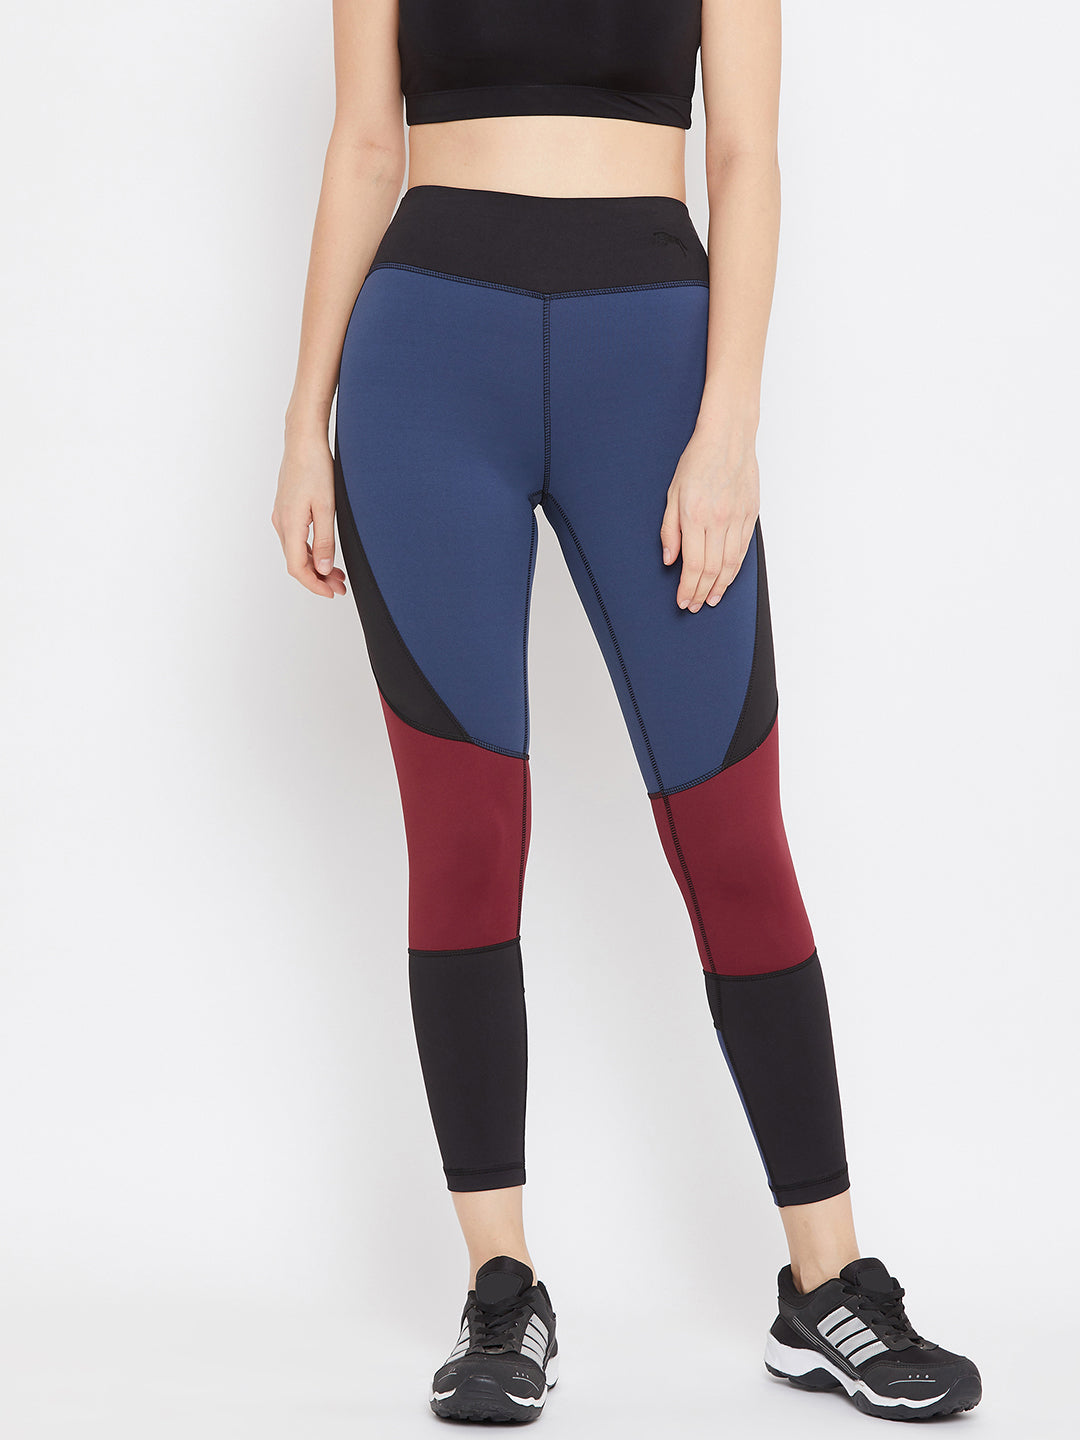 JUMP USA Women Blue & Red Colourblock Active Wear Tights